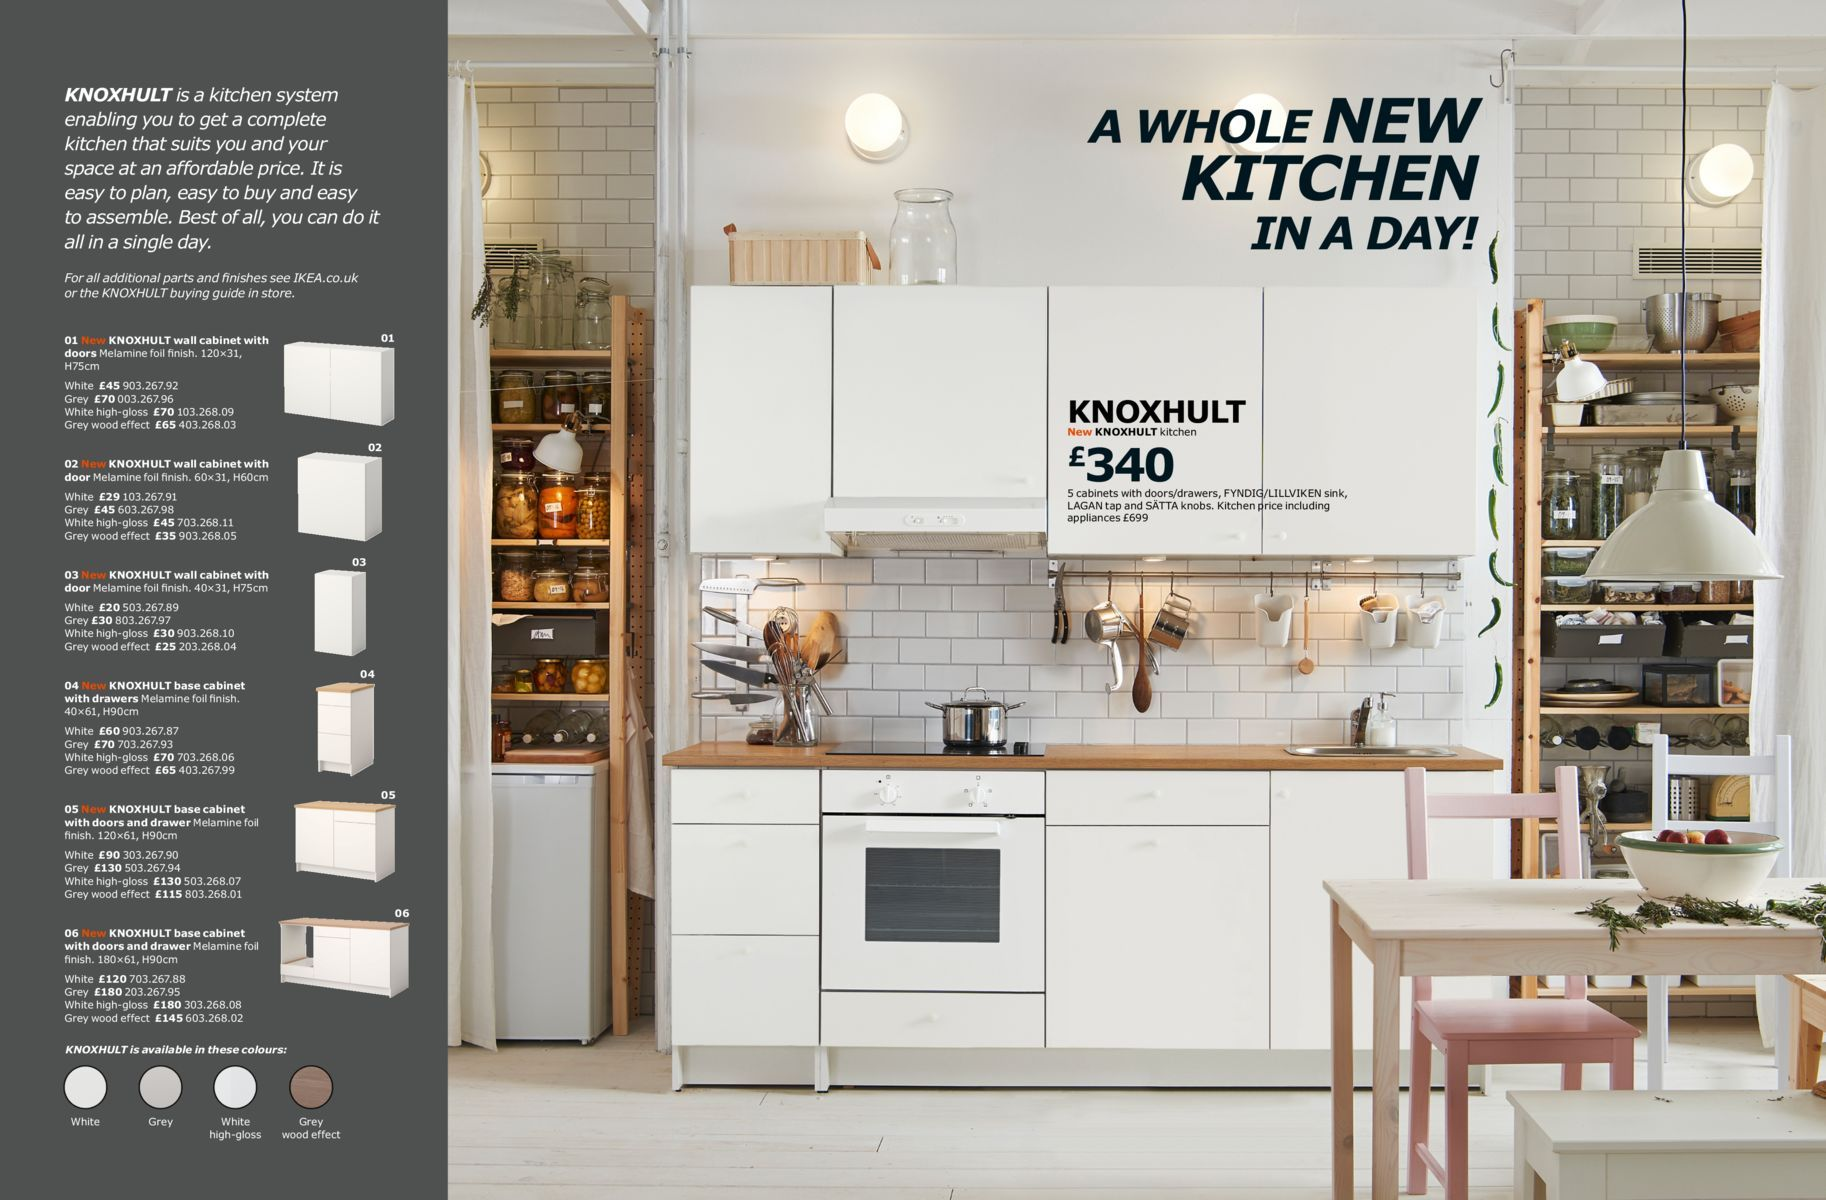 Ikea Kitchens 2017 Kitchen Brochure 2017 Kitchens With Ikea In 2019 Ikea Kitchen